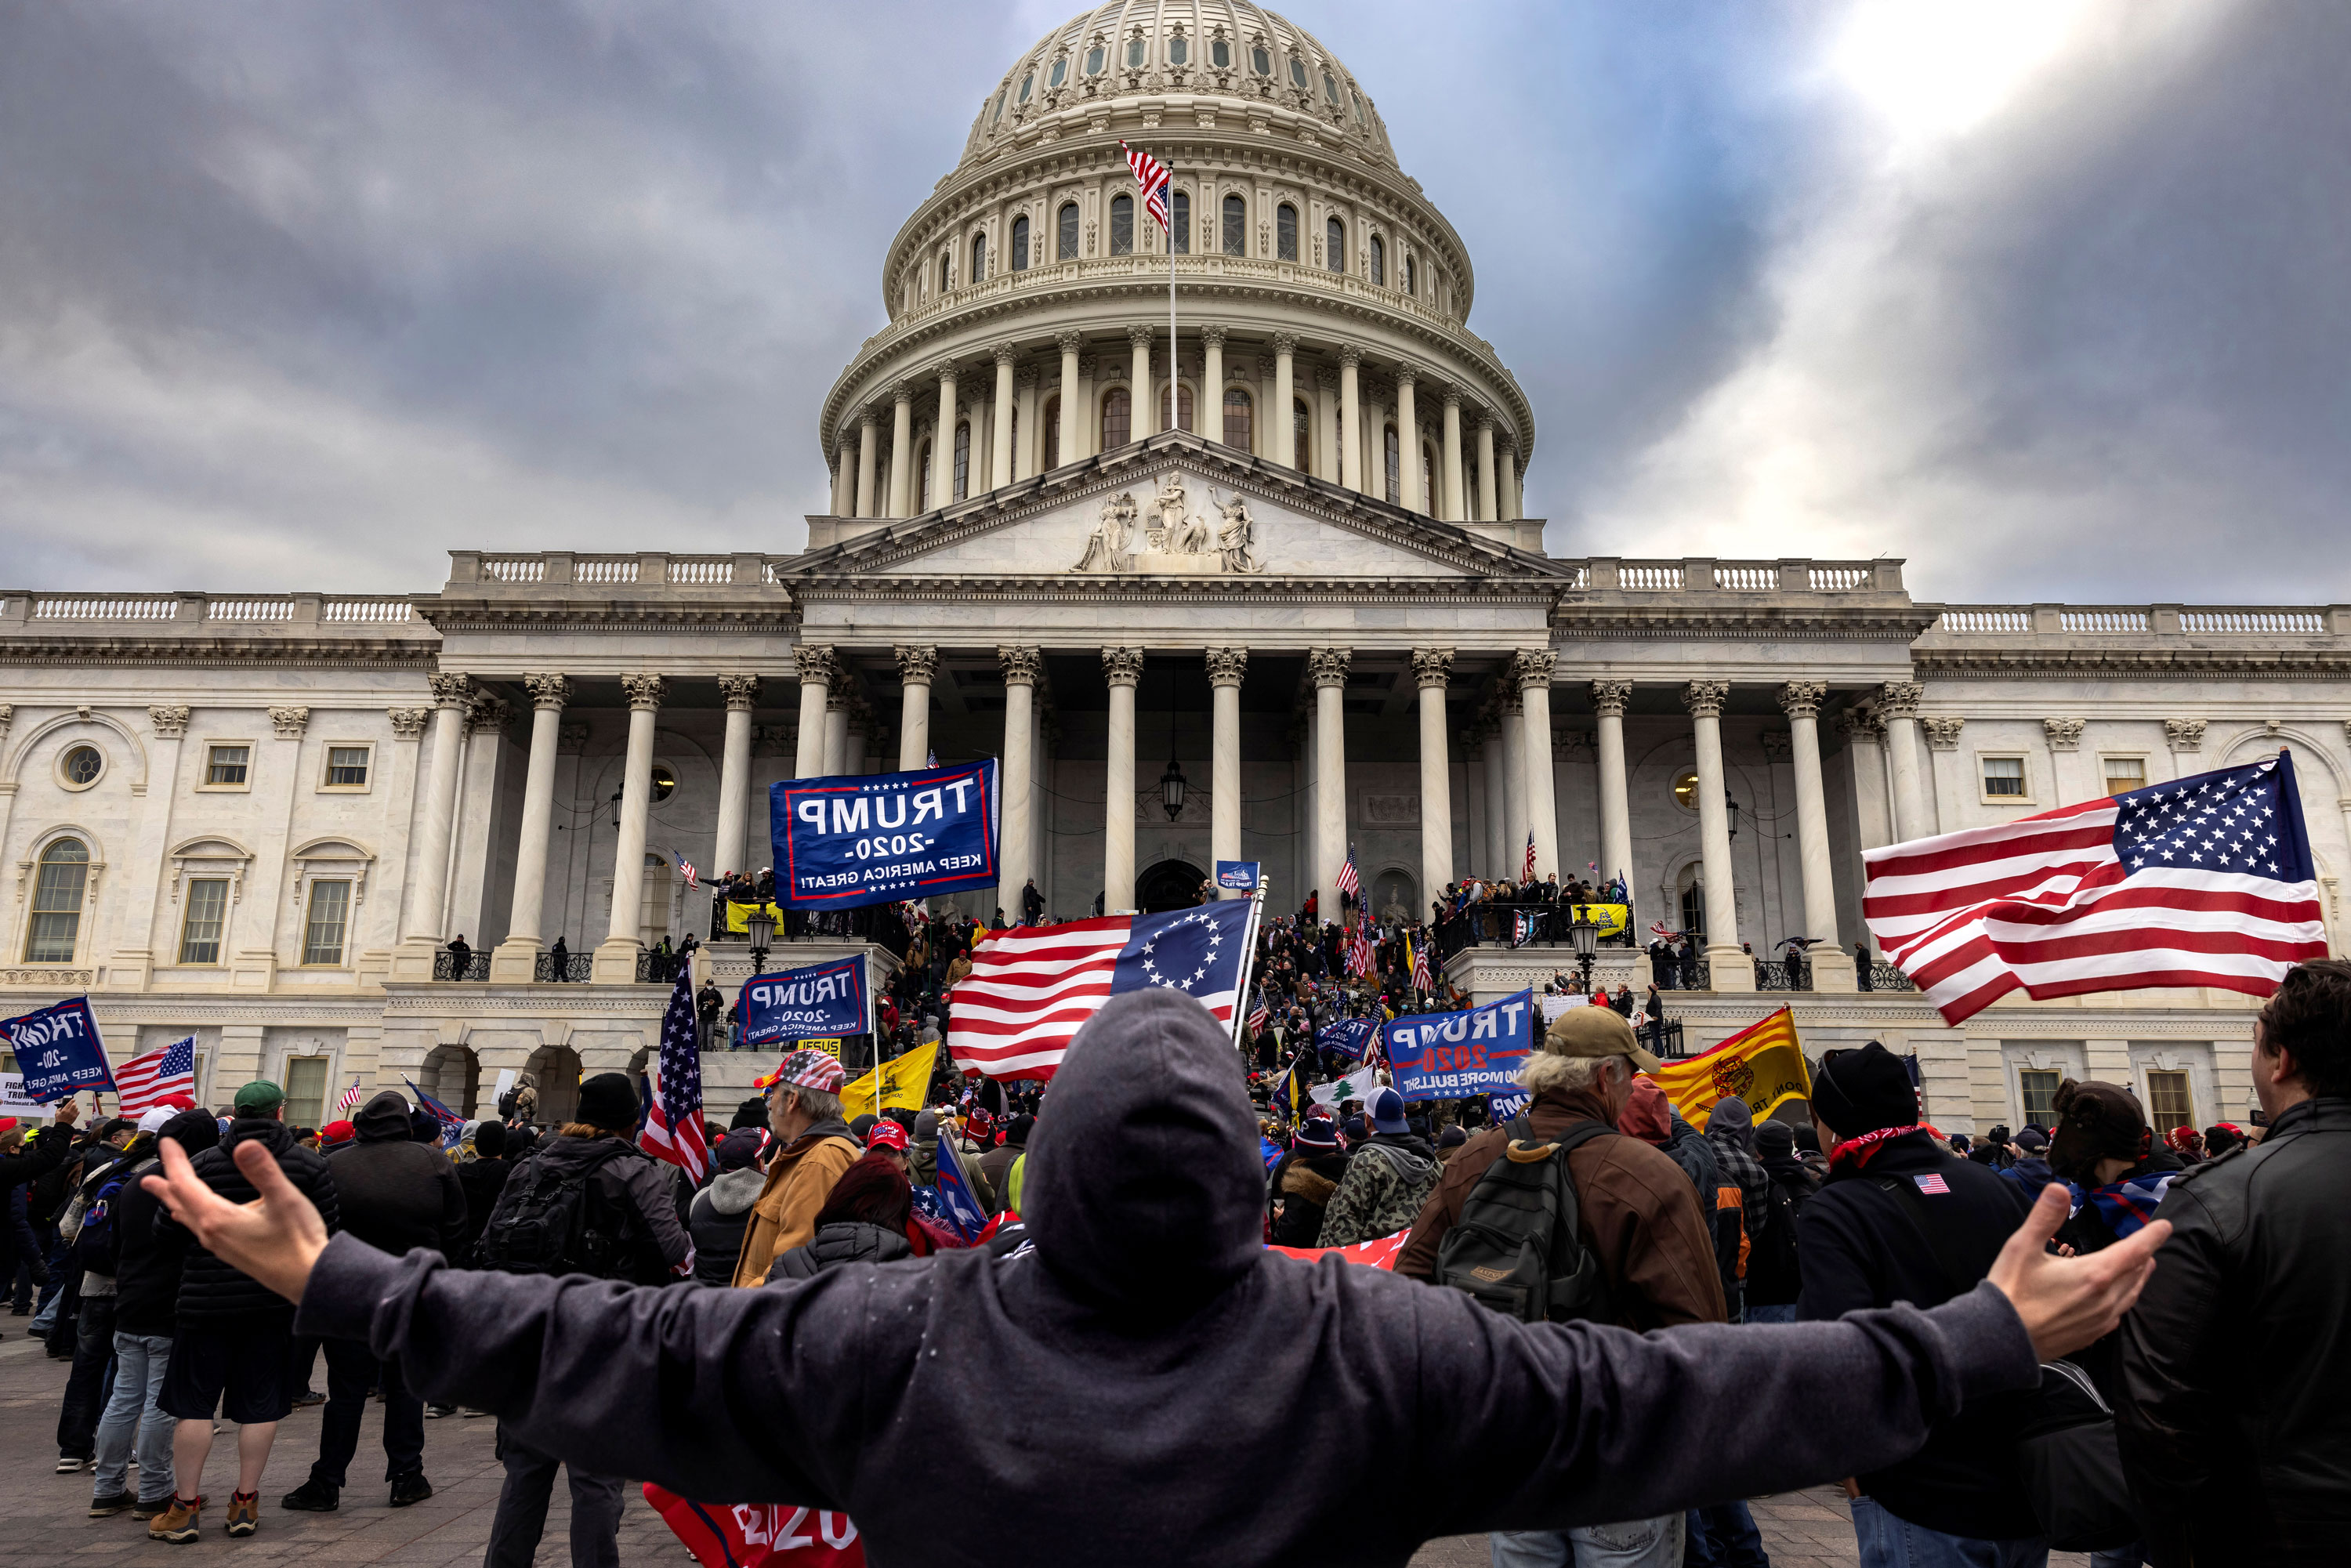 Alleged Oath Keeper to plead guilty in first among major Capitol riot conspiracy cases